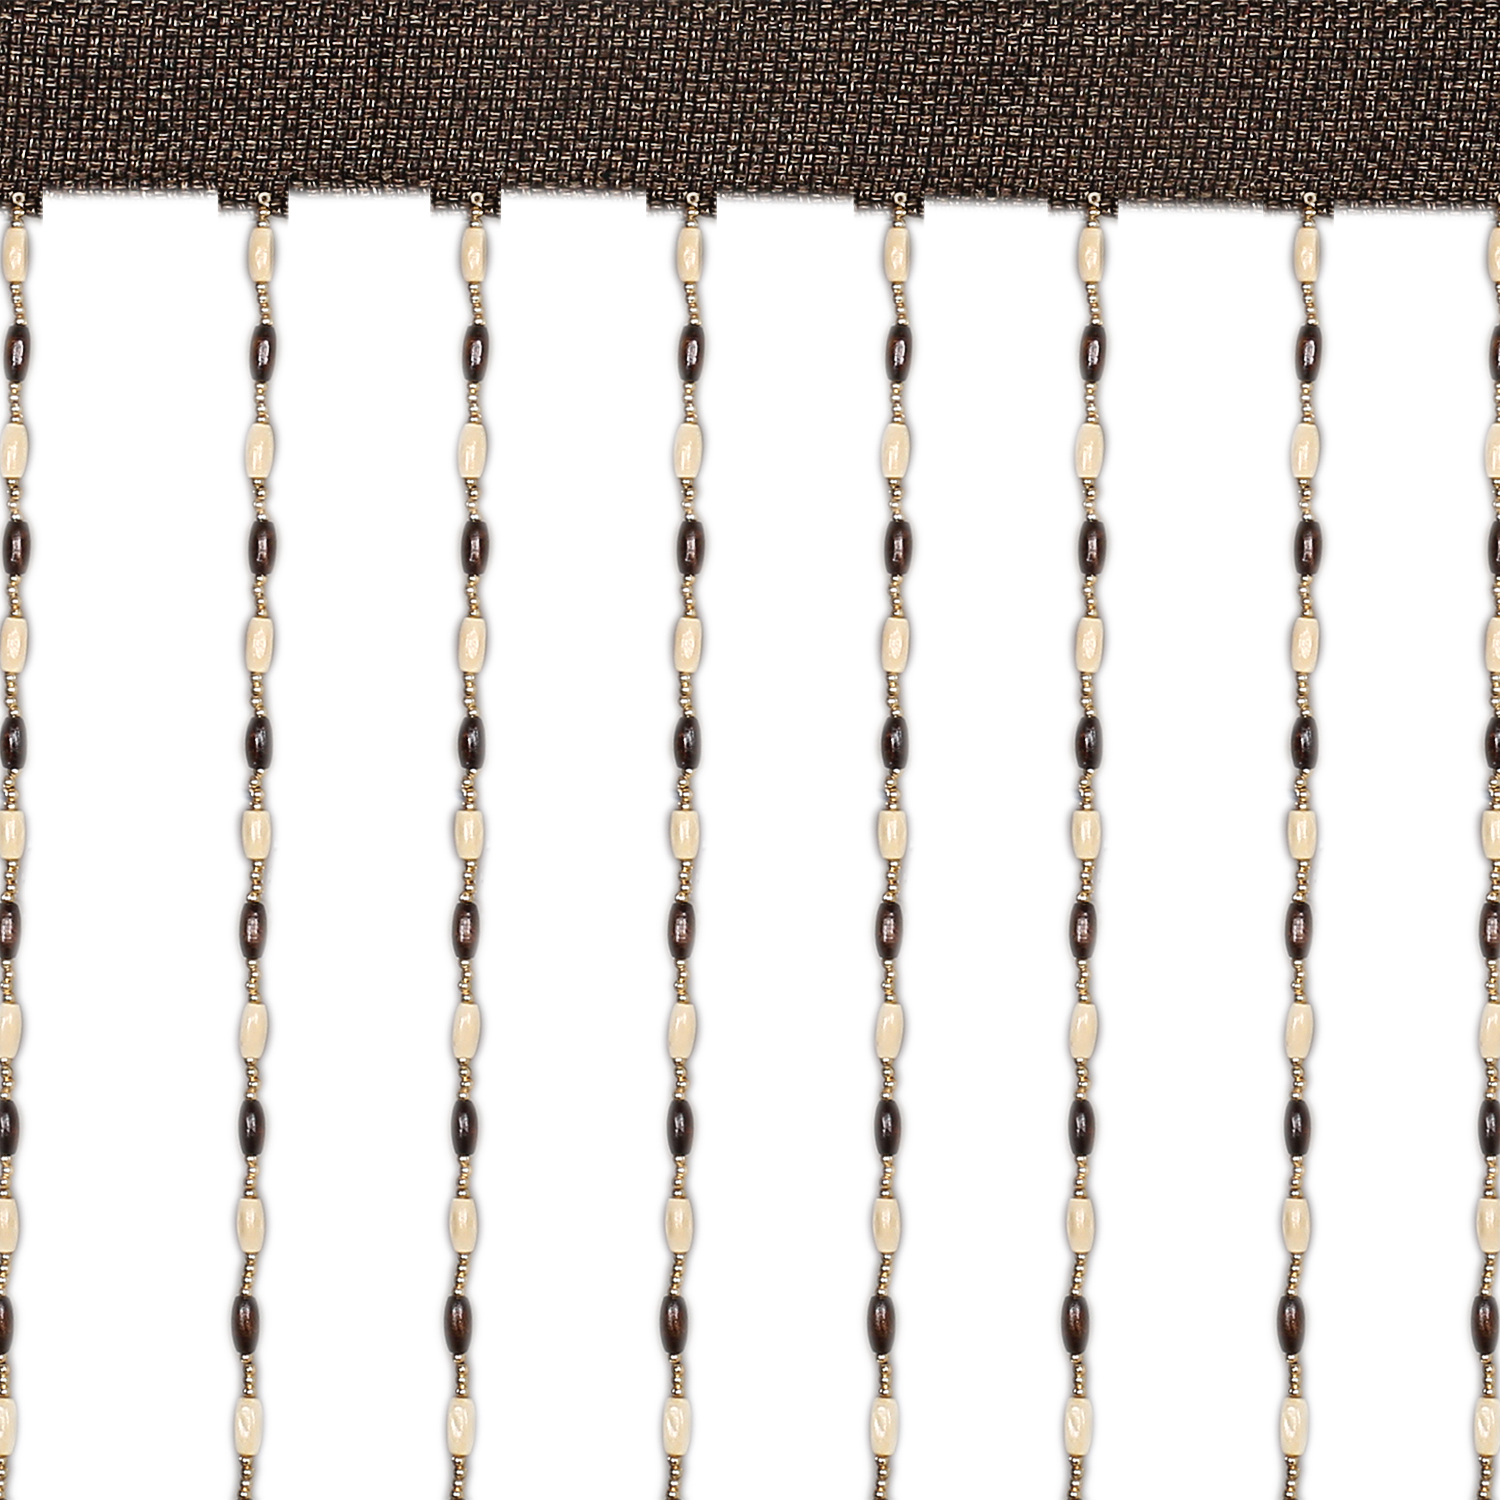 Kuber Industries Wooden Sparkling Beaded String Shear Hanging Door Curtain 7 Feet (Brown) -CTKTC12749